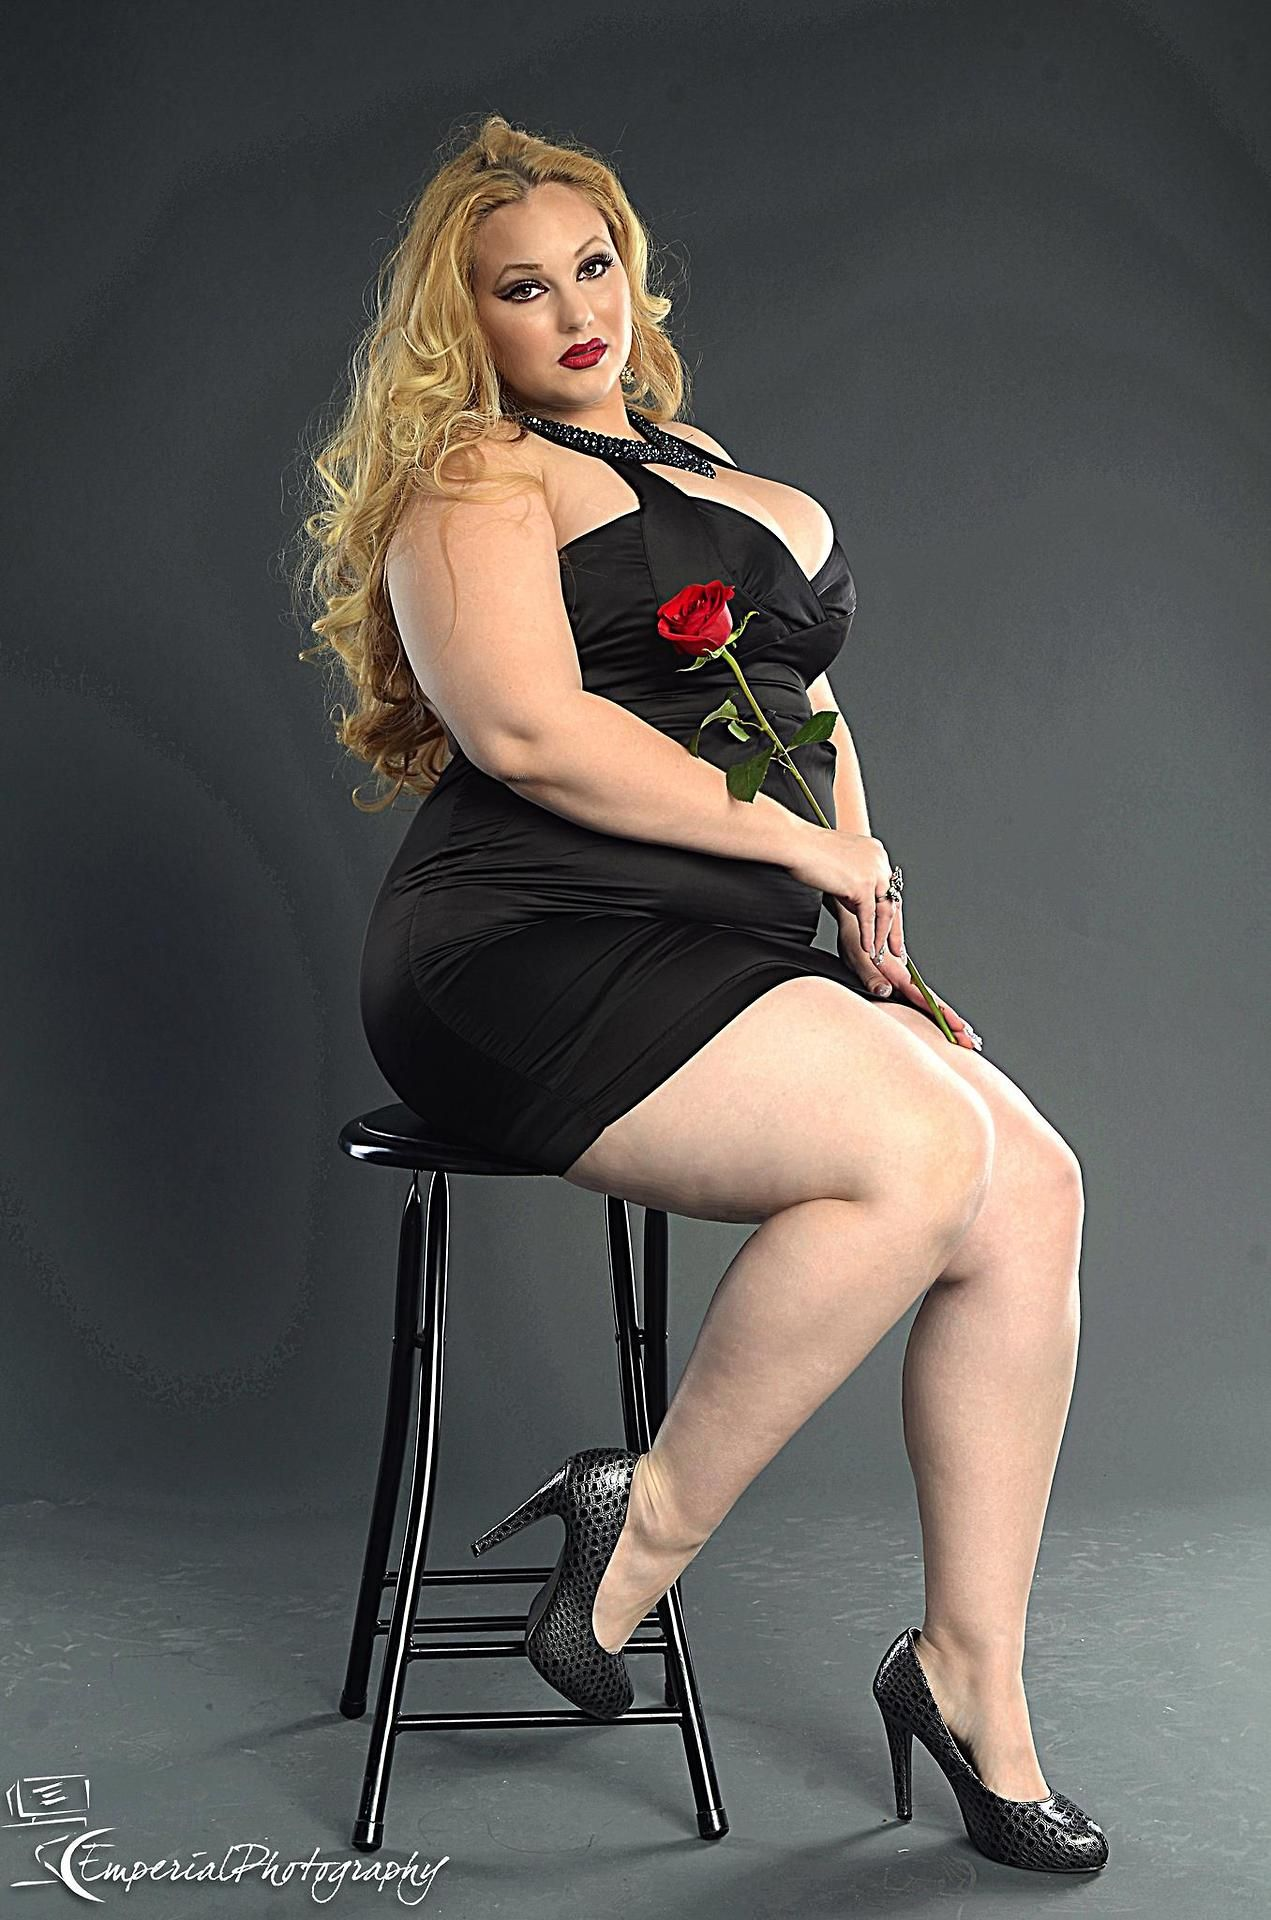 i love bbw in little black dresses. i love spooning with them after